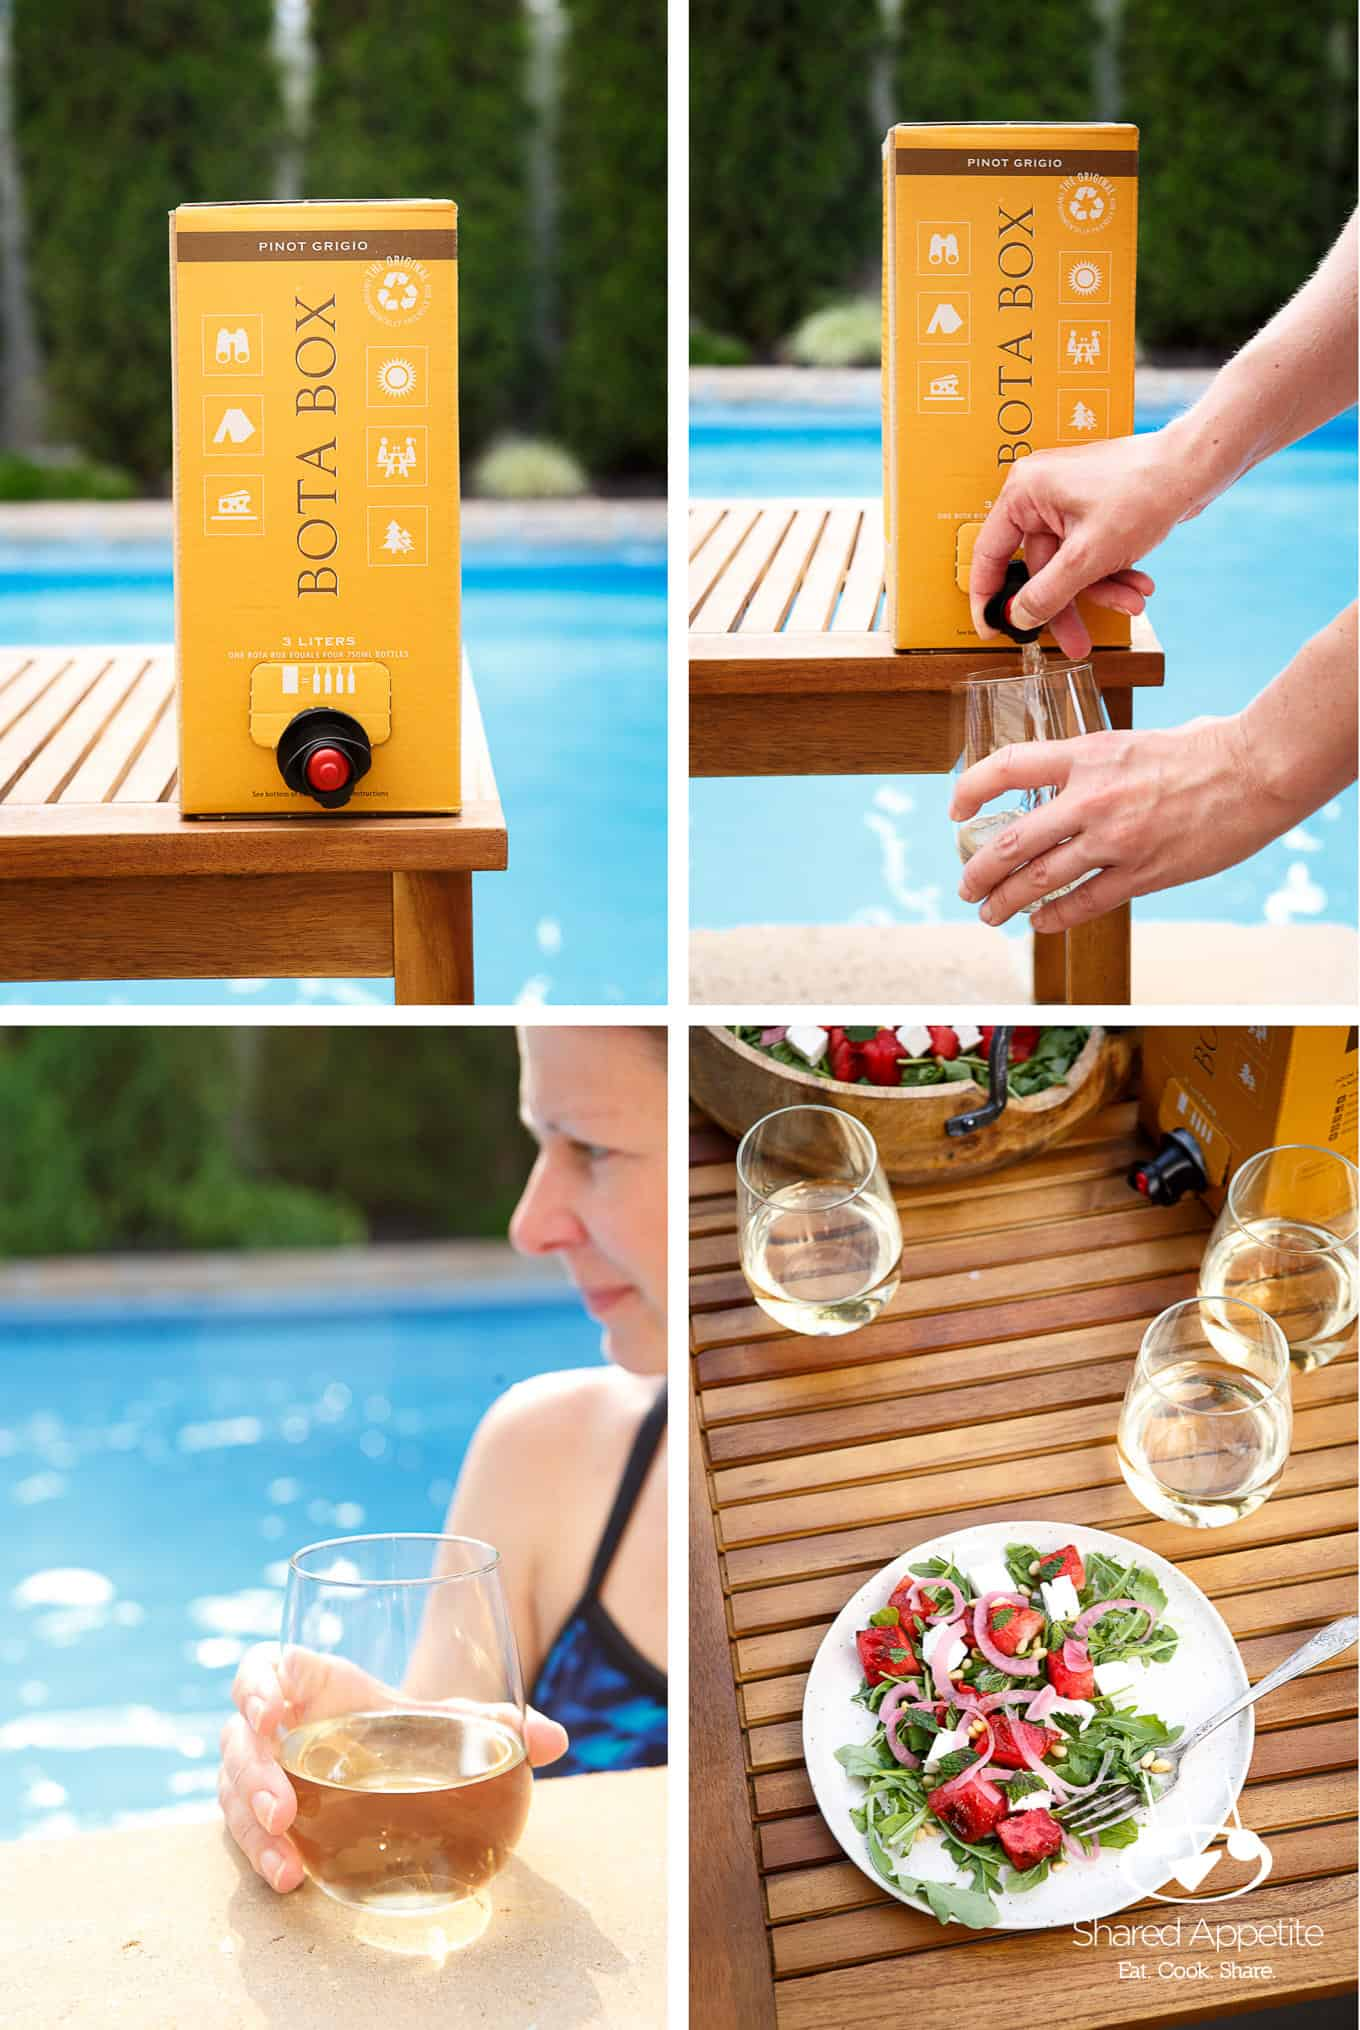 Enjoying Bota Box by the Pool with Grilled Watermelon Salad with Arugula, Feta, and Pickled Onions | sharedappetite.com